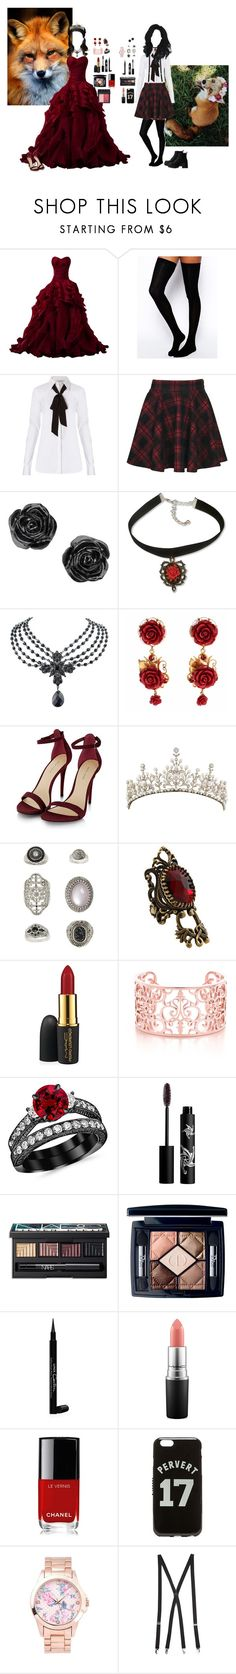 """""""Reboot: Fox"""" by regigigas ❤ liked on Polyvore featuring ASOS, Diane Von Furstenberg, Boohoo, 1928, Dolce&Gabbana, Topshop, Lucky Brand, MAC Cosmetics, Rouge Bunny Rouge and NARS Cosmetics"""